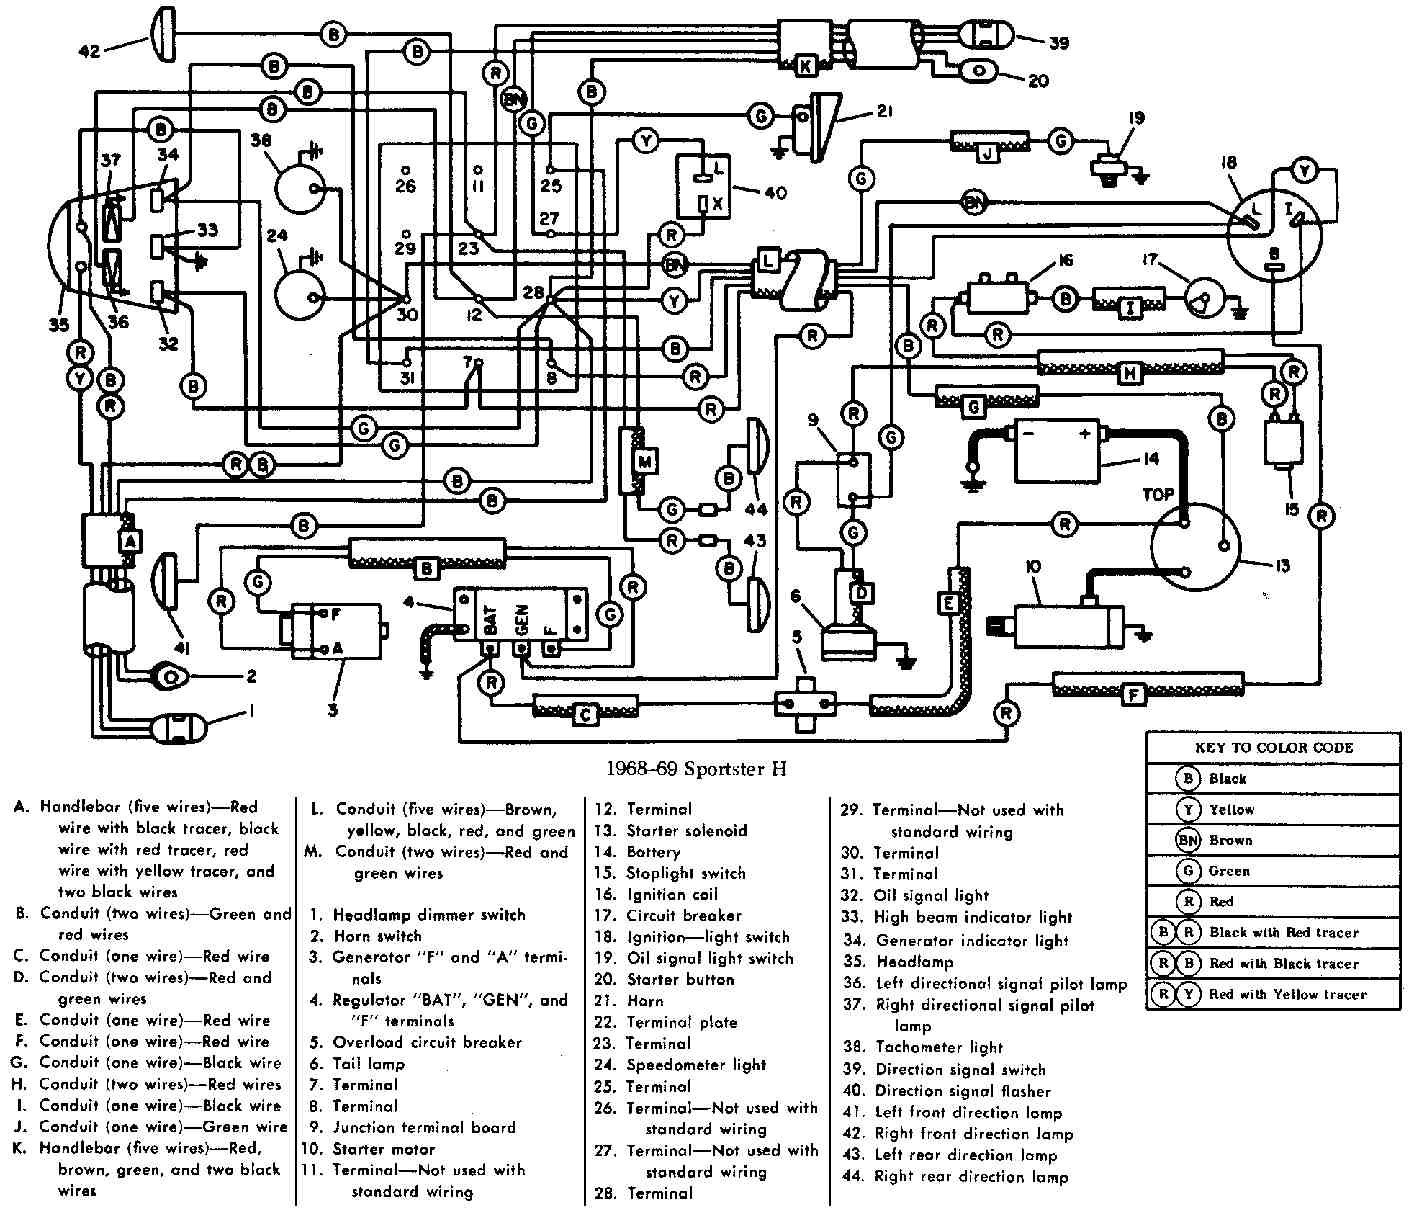 coil diagram 1997 hd wiring diagram services u2022 rh otodiagramwiring today